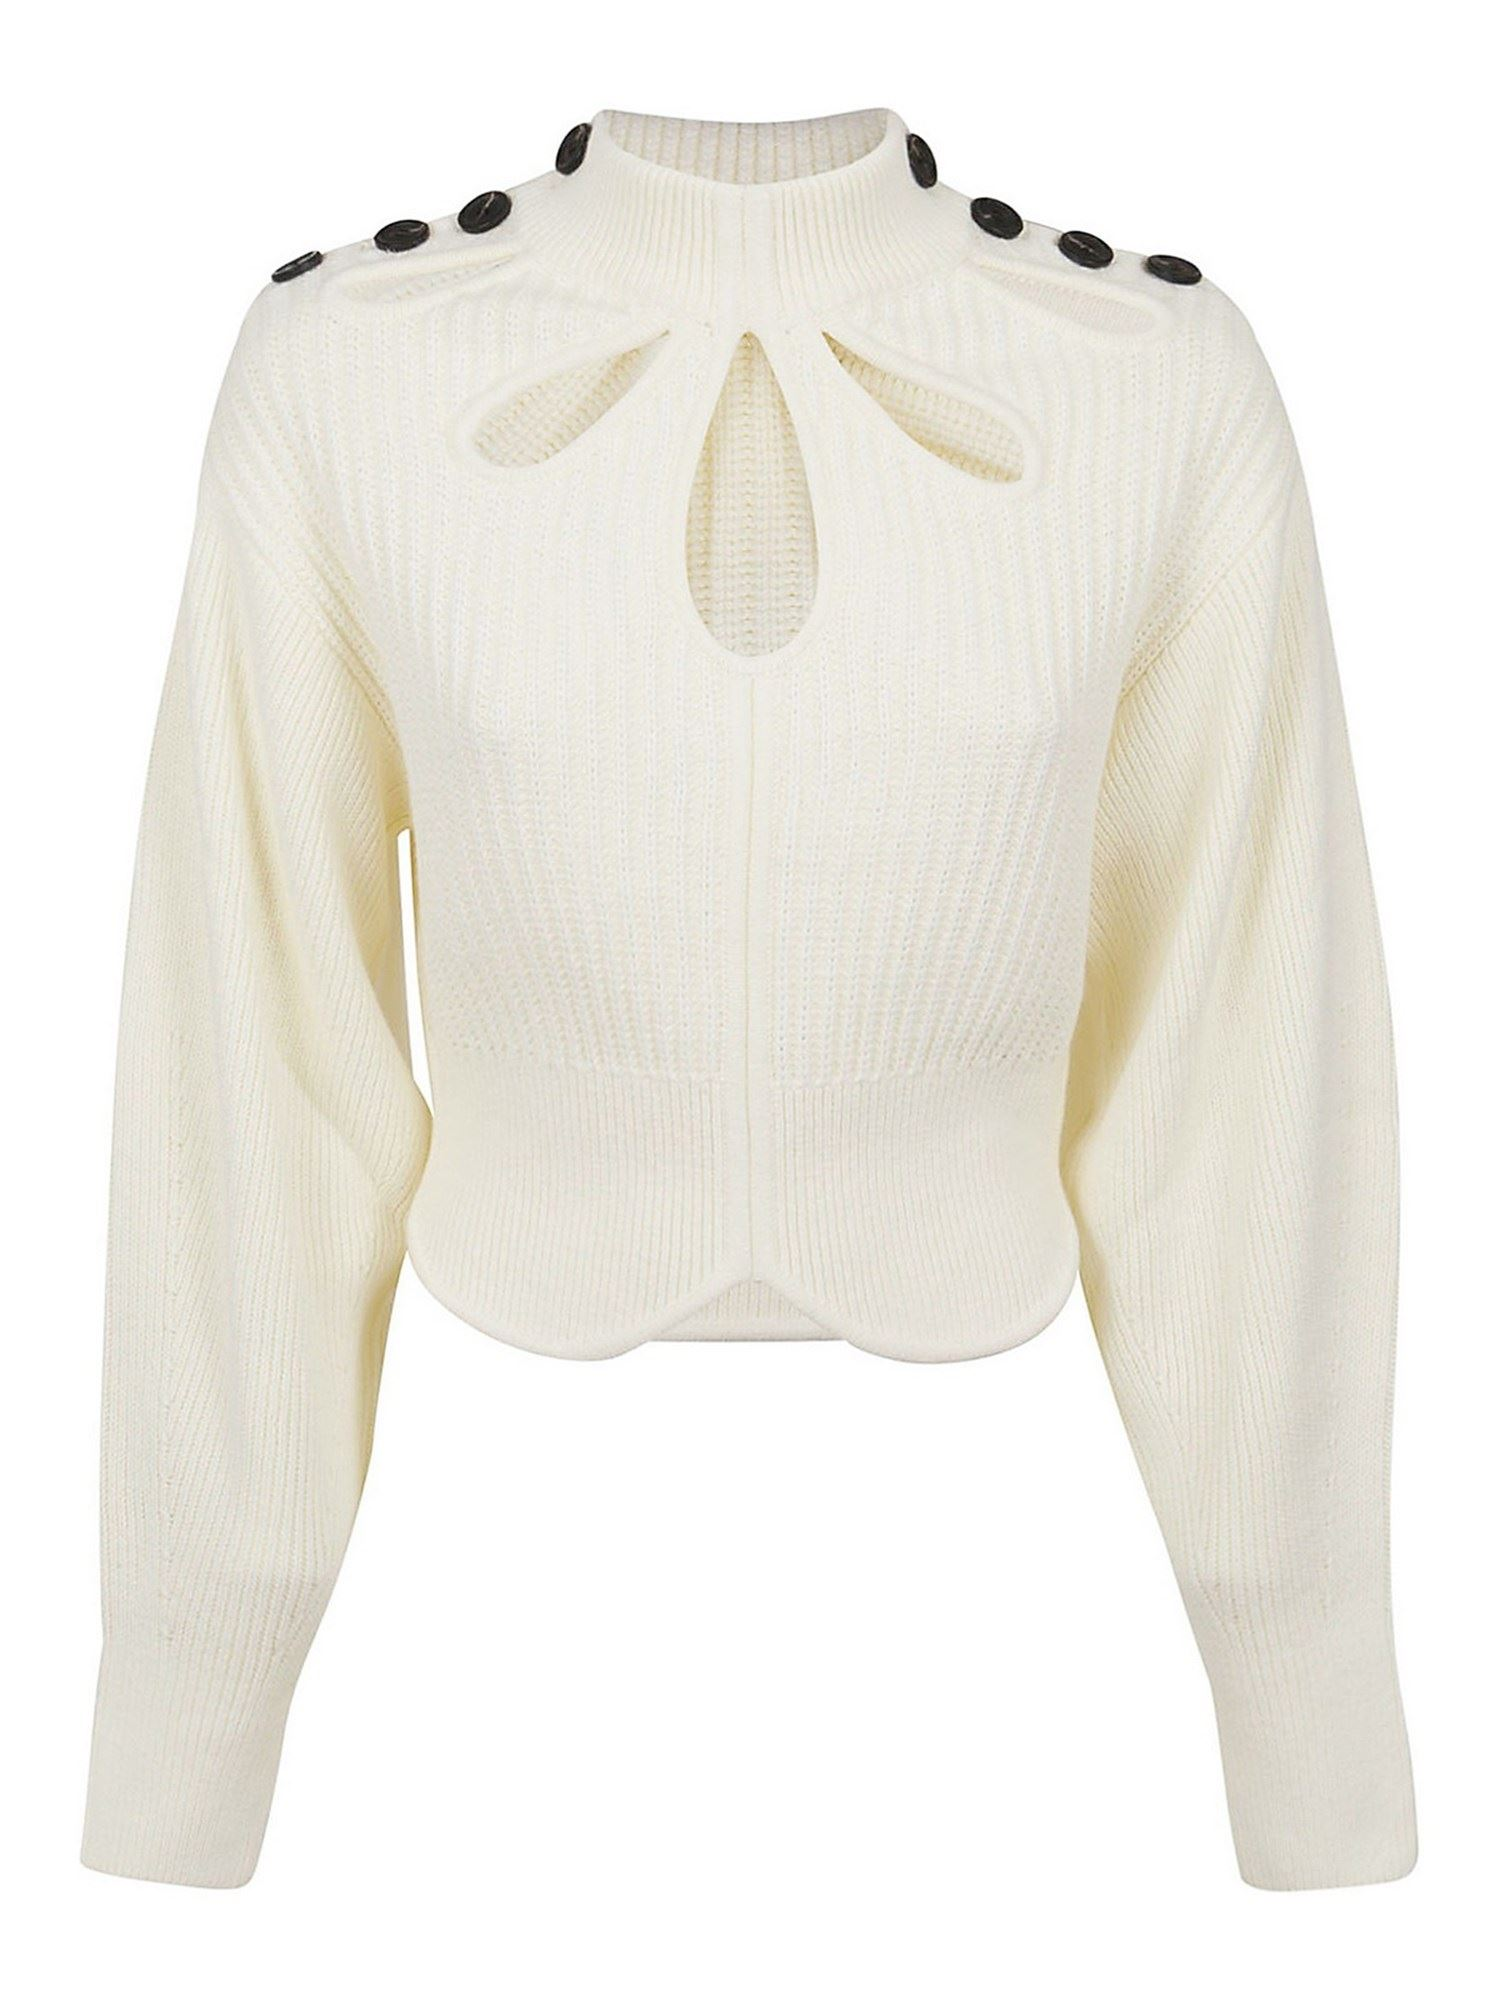 Self-Portrait CUT OUT AND BUTTON DETAIL SWEATER IN WHITE